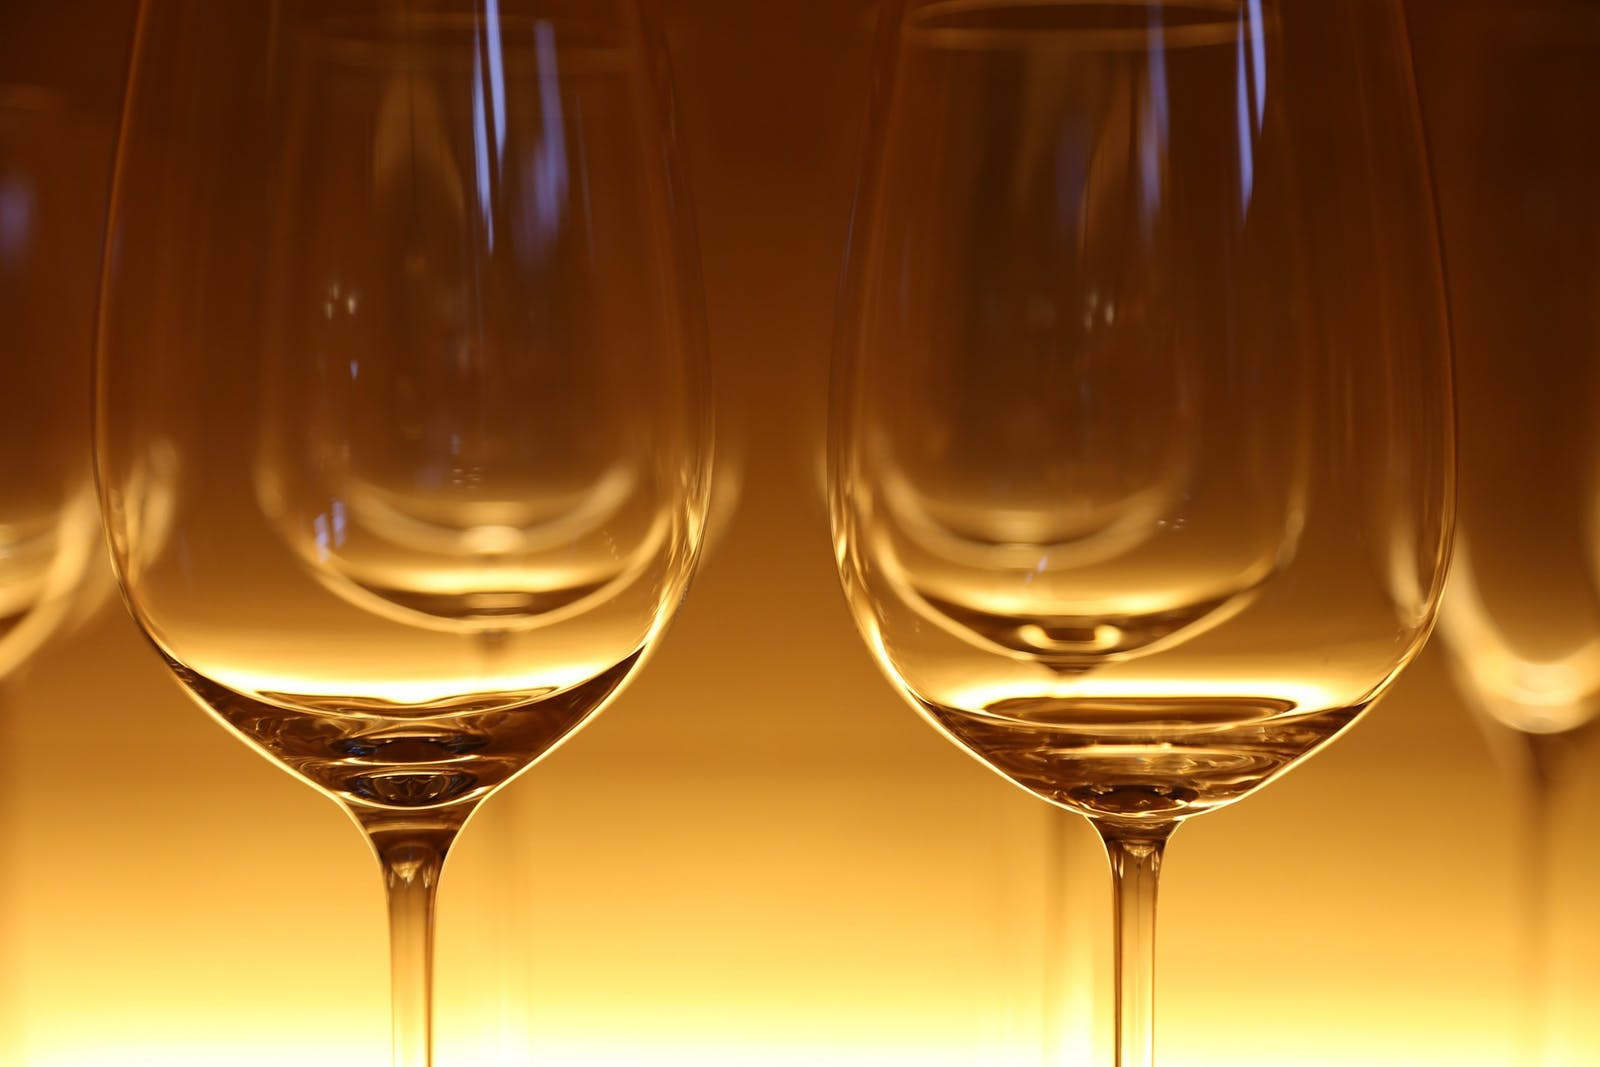 Can I drink wine on a keto diet?